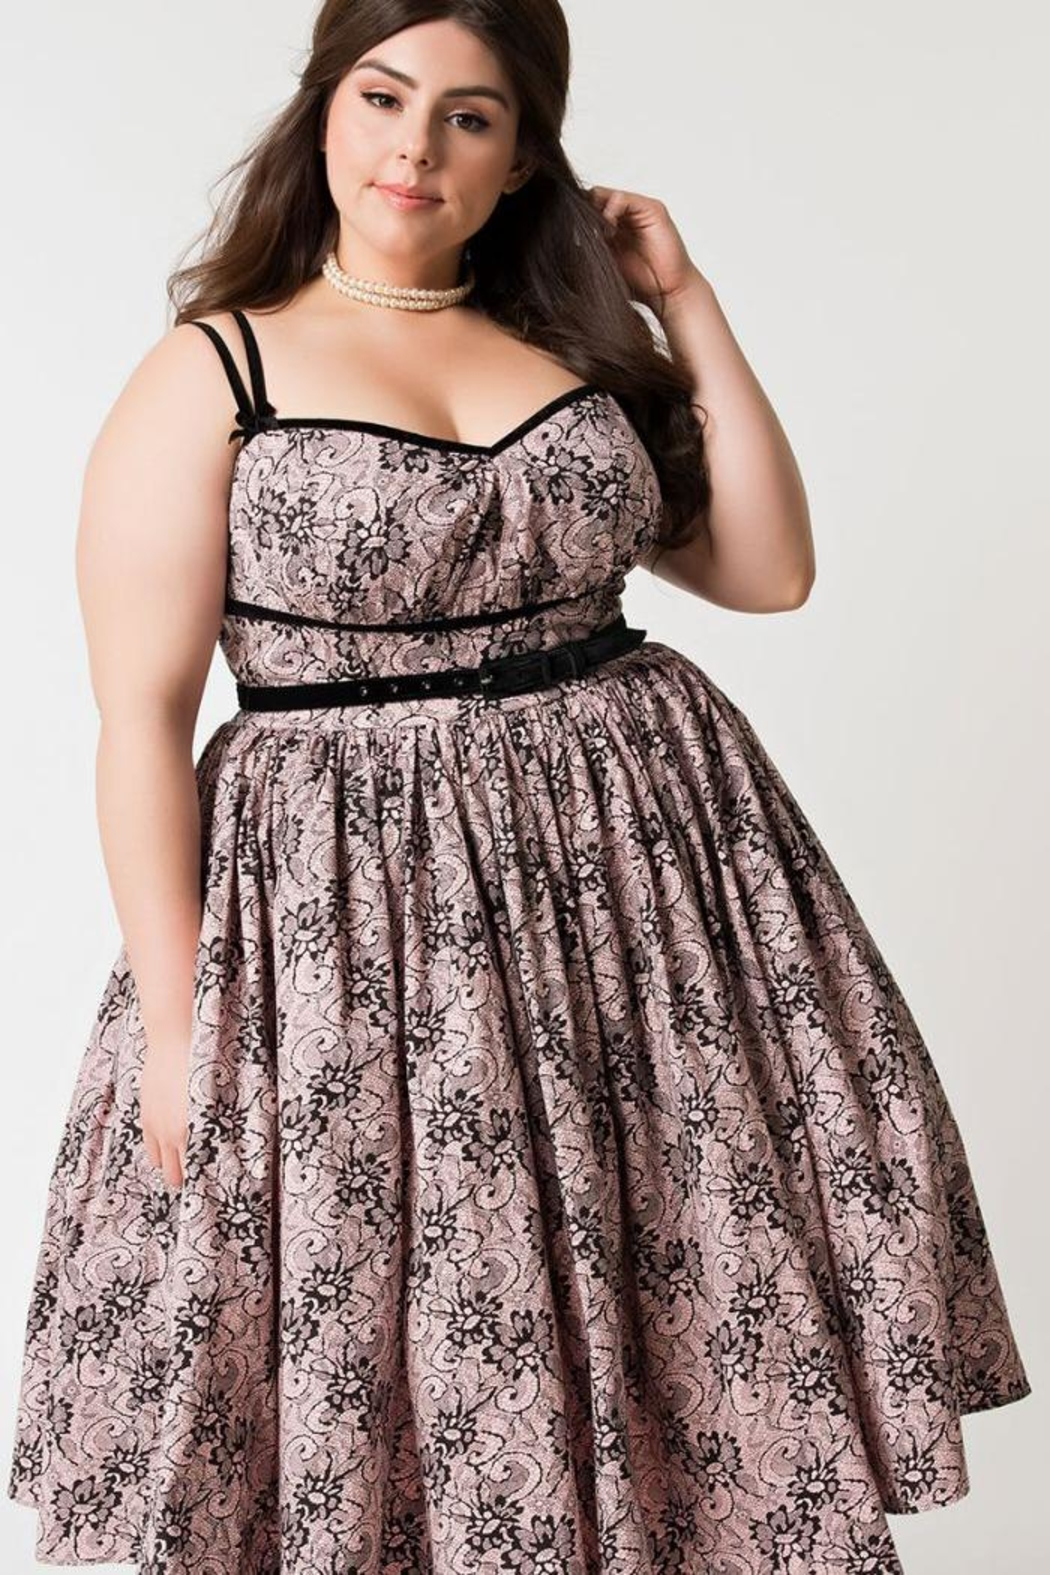 ac1366c1ce3 Unique Vintage Micheline Pitt Alice-Swing-Dress from Omaha by Daisy ...